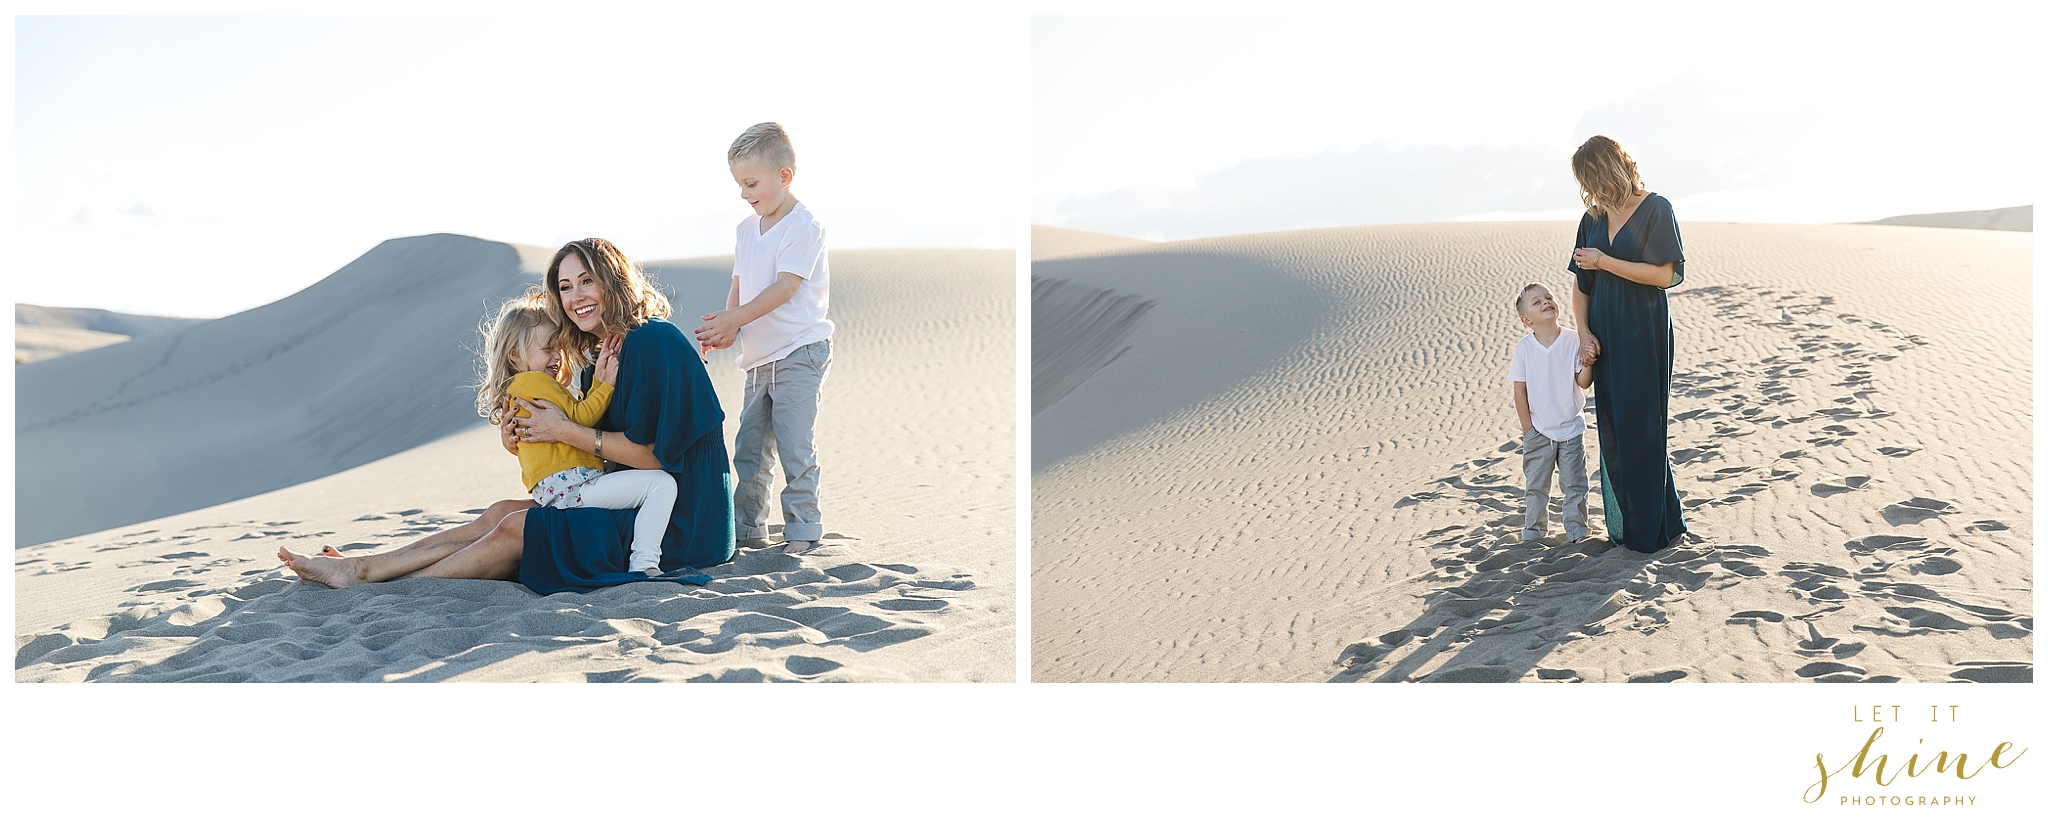 Bruneau Sand Dunes Family Session Let it shine Photography-5348.jpg